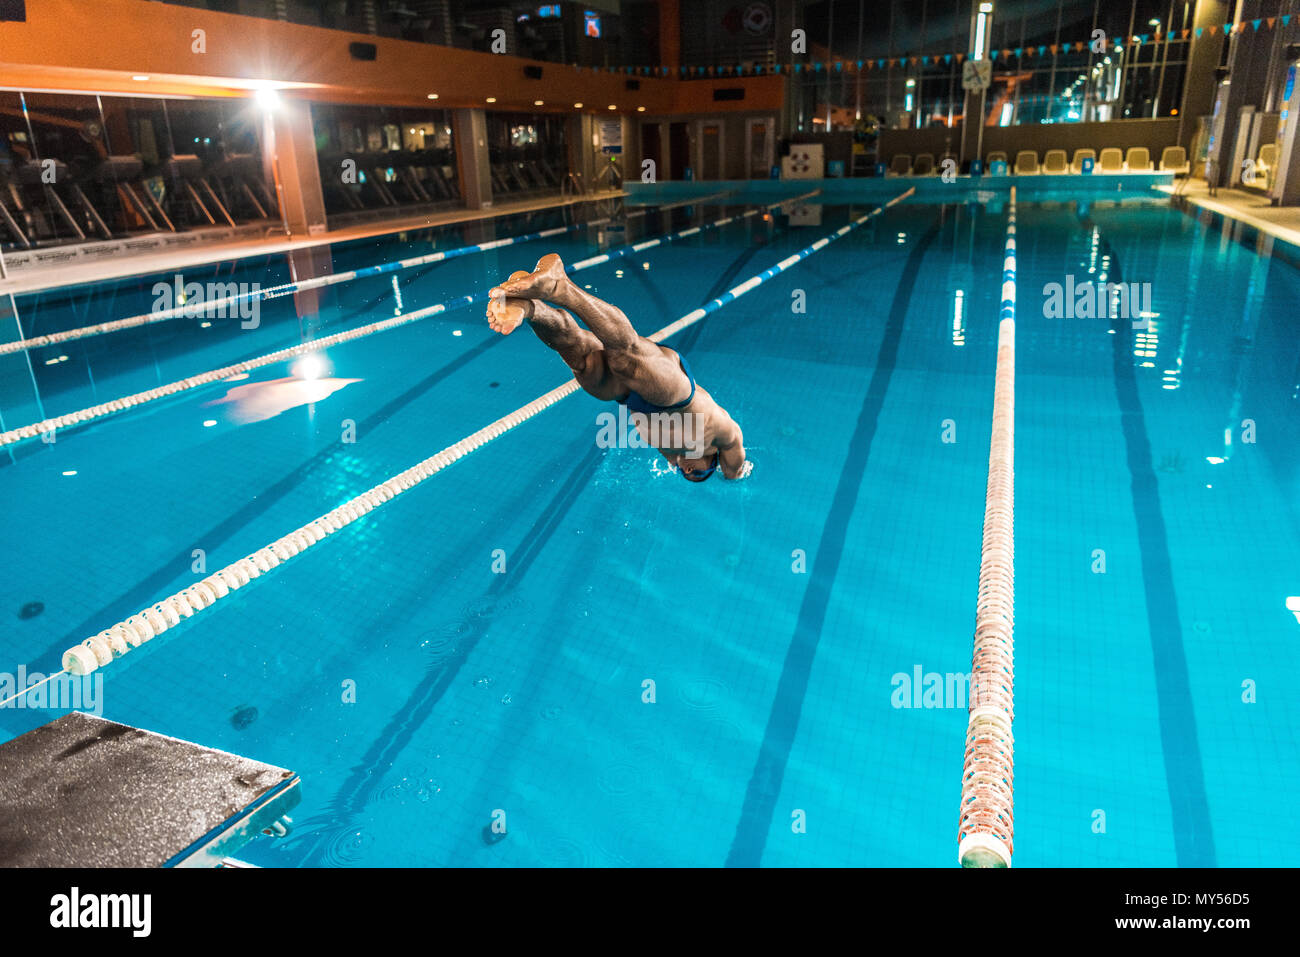 swimmer diving into competition swimming pool - Stock Image